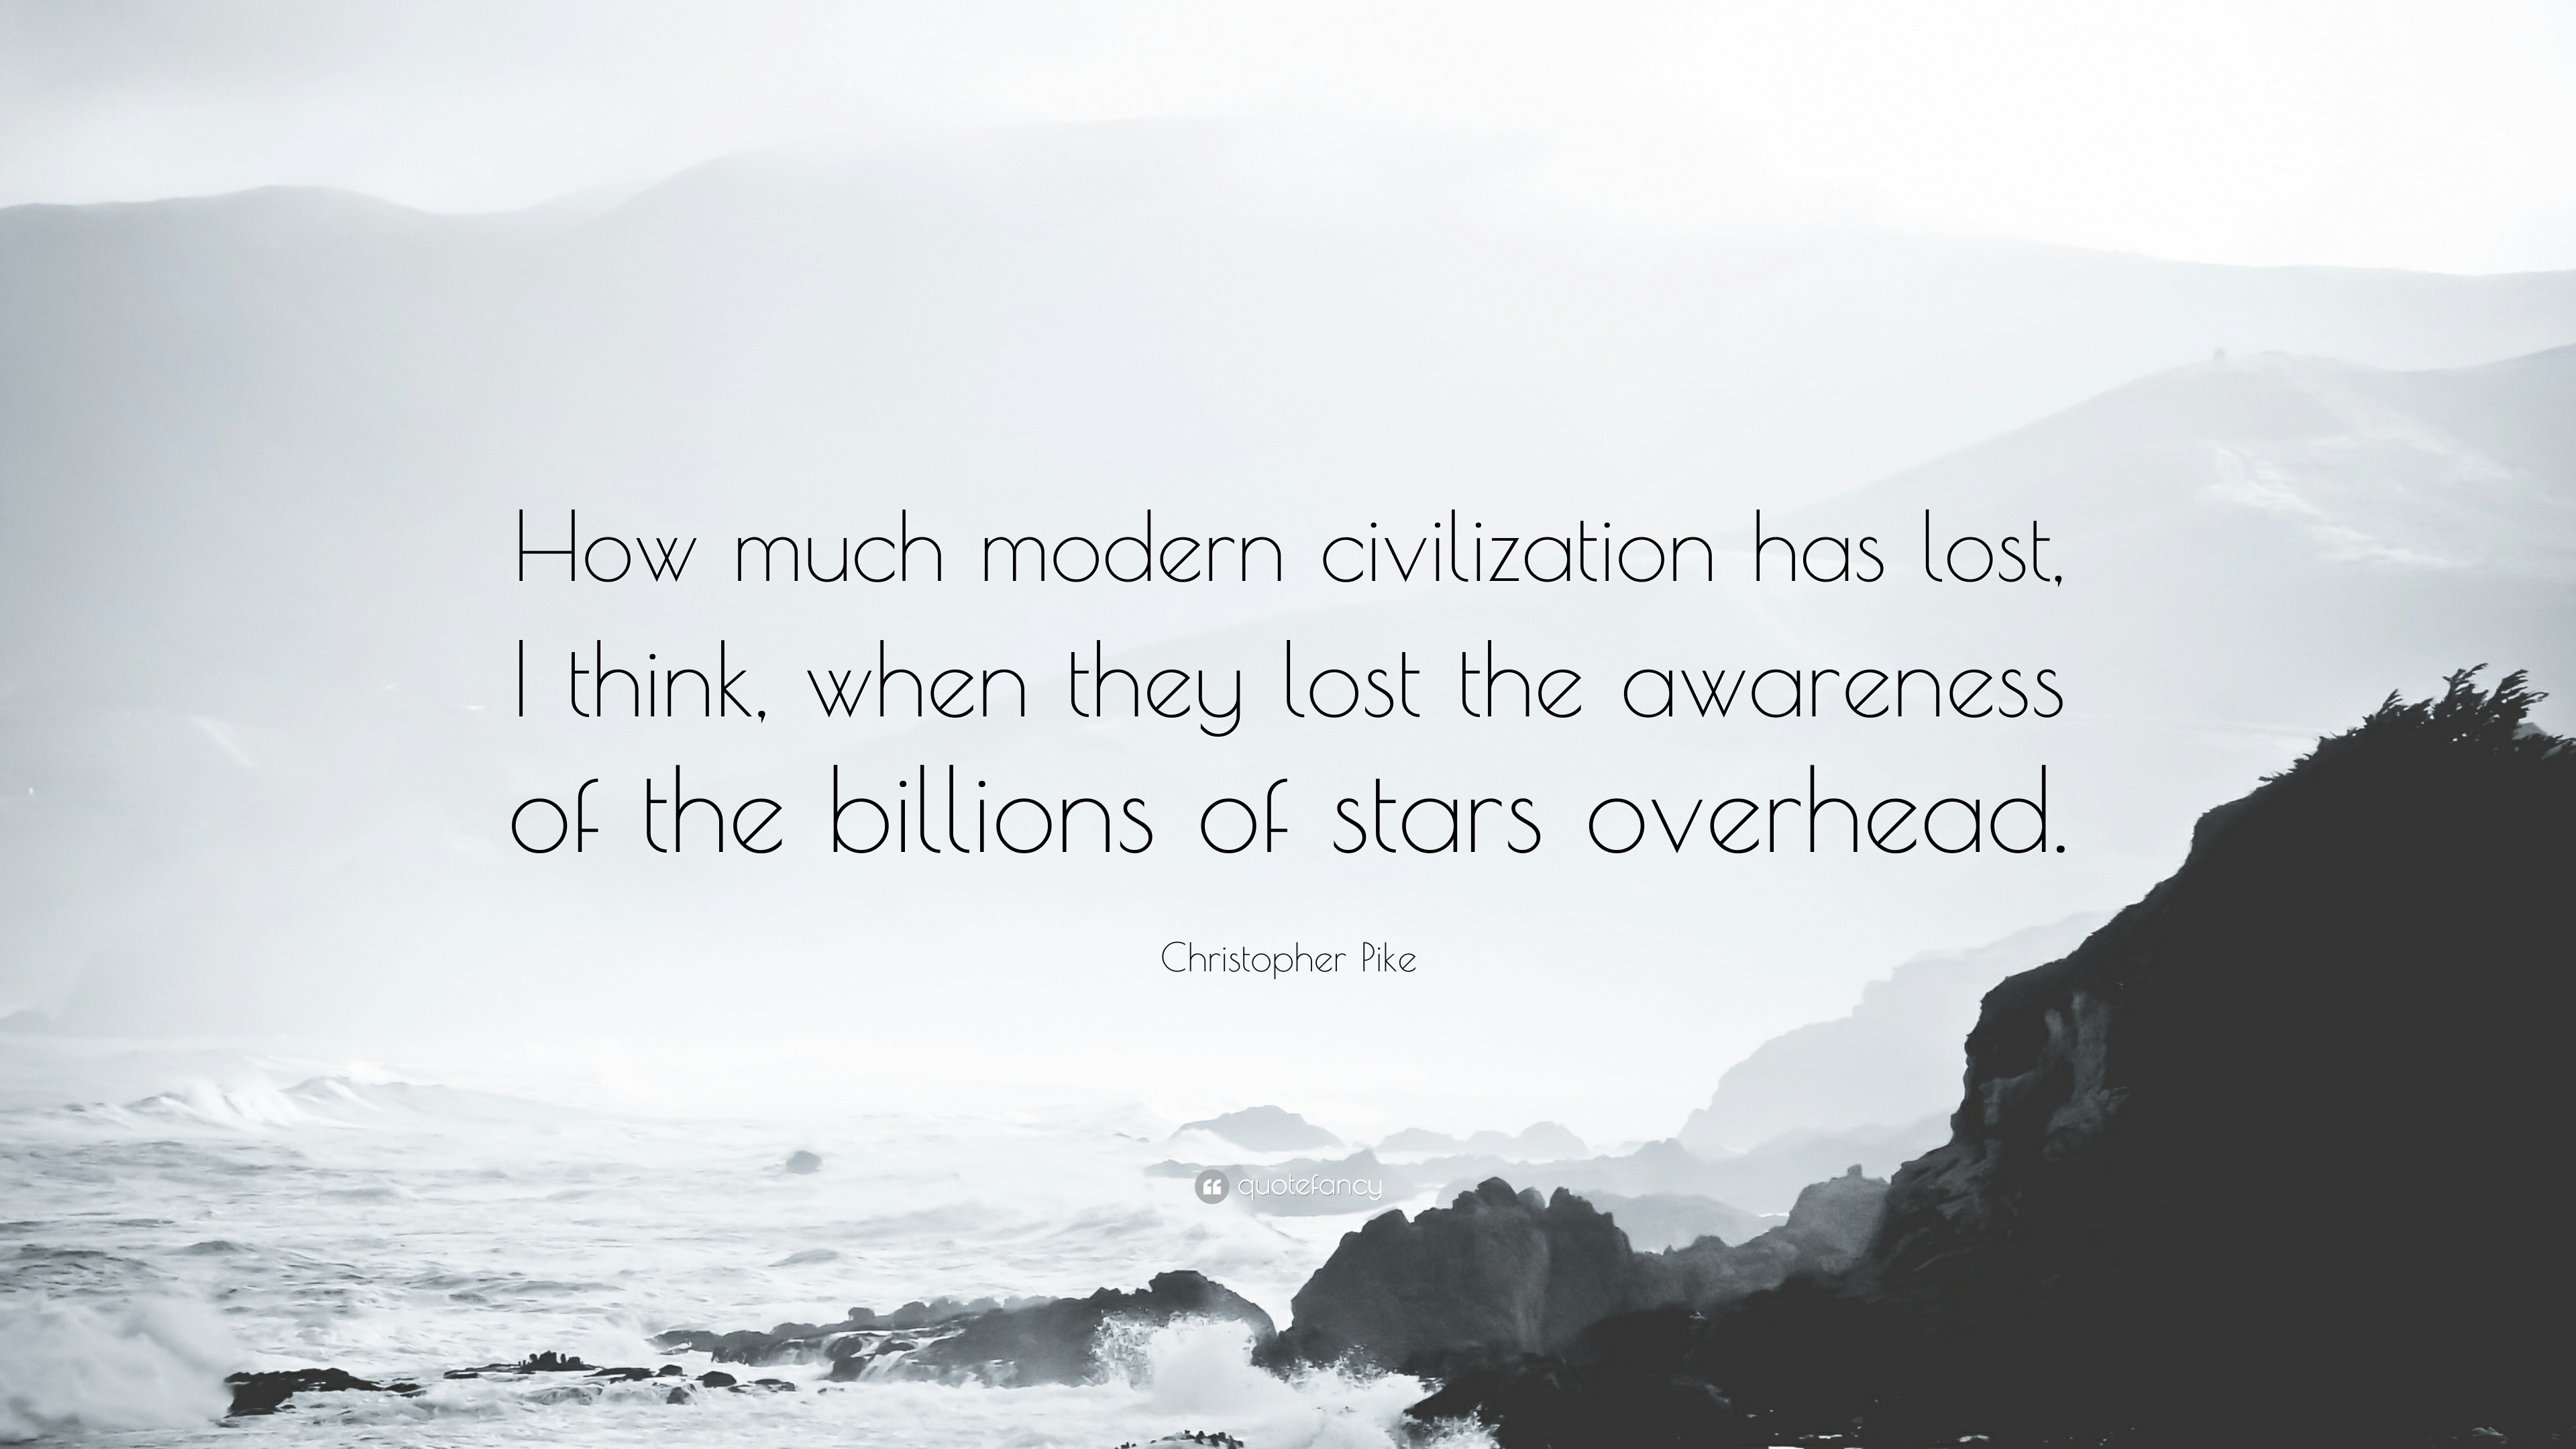 Christopher Pike Quote: U201cHow Much Modern Civilization Has Lost, I Think,  When